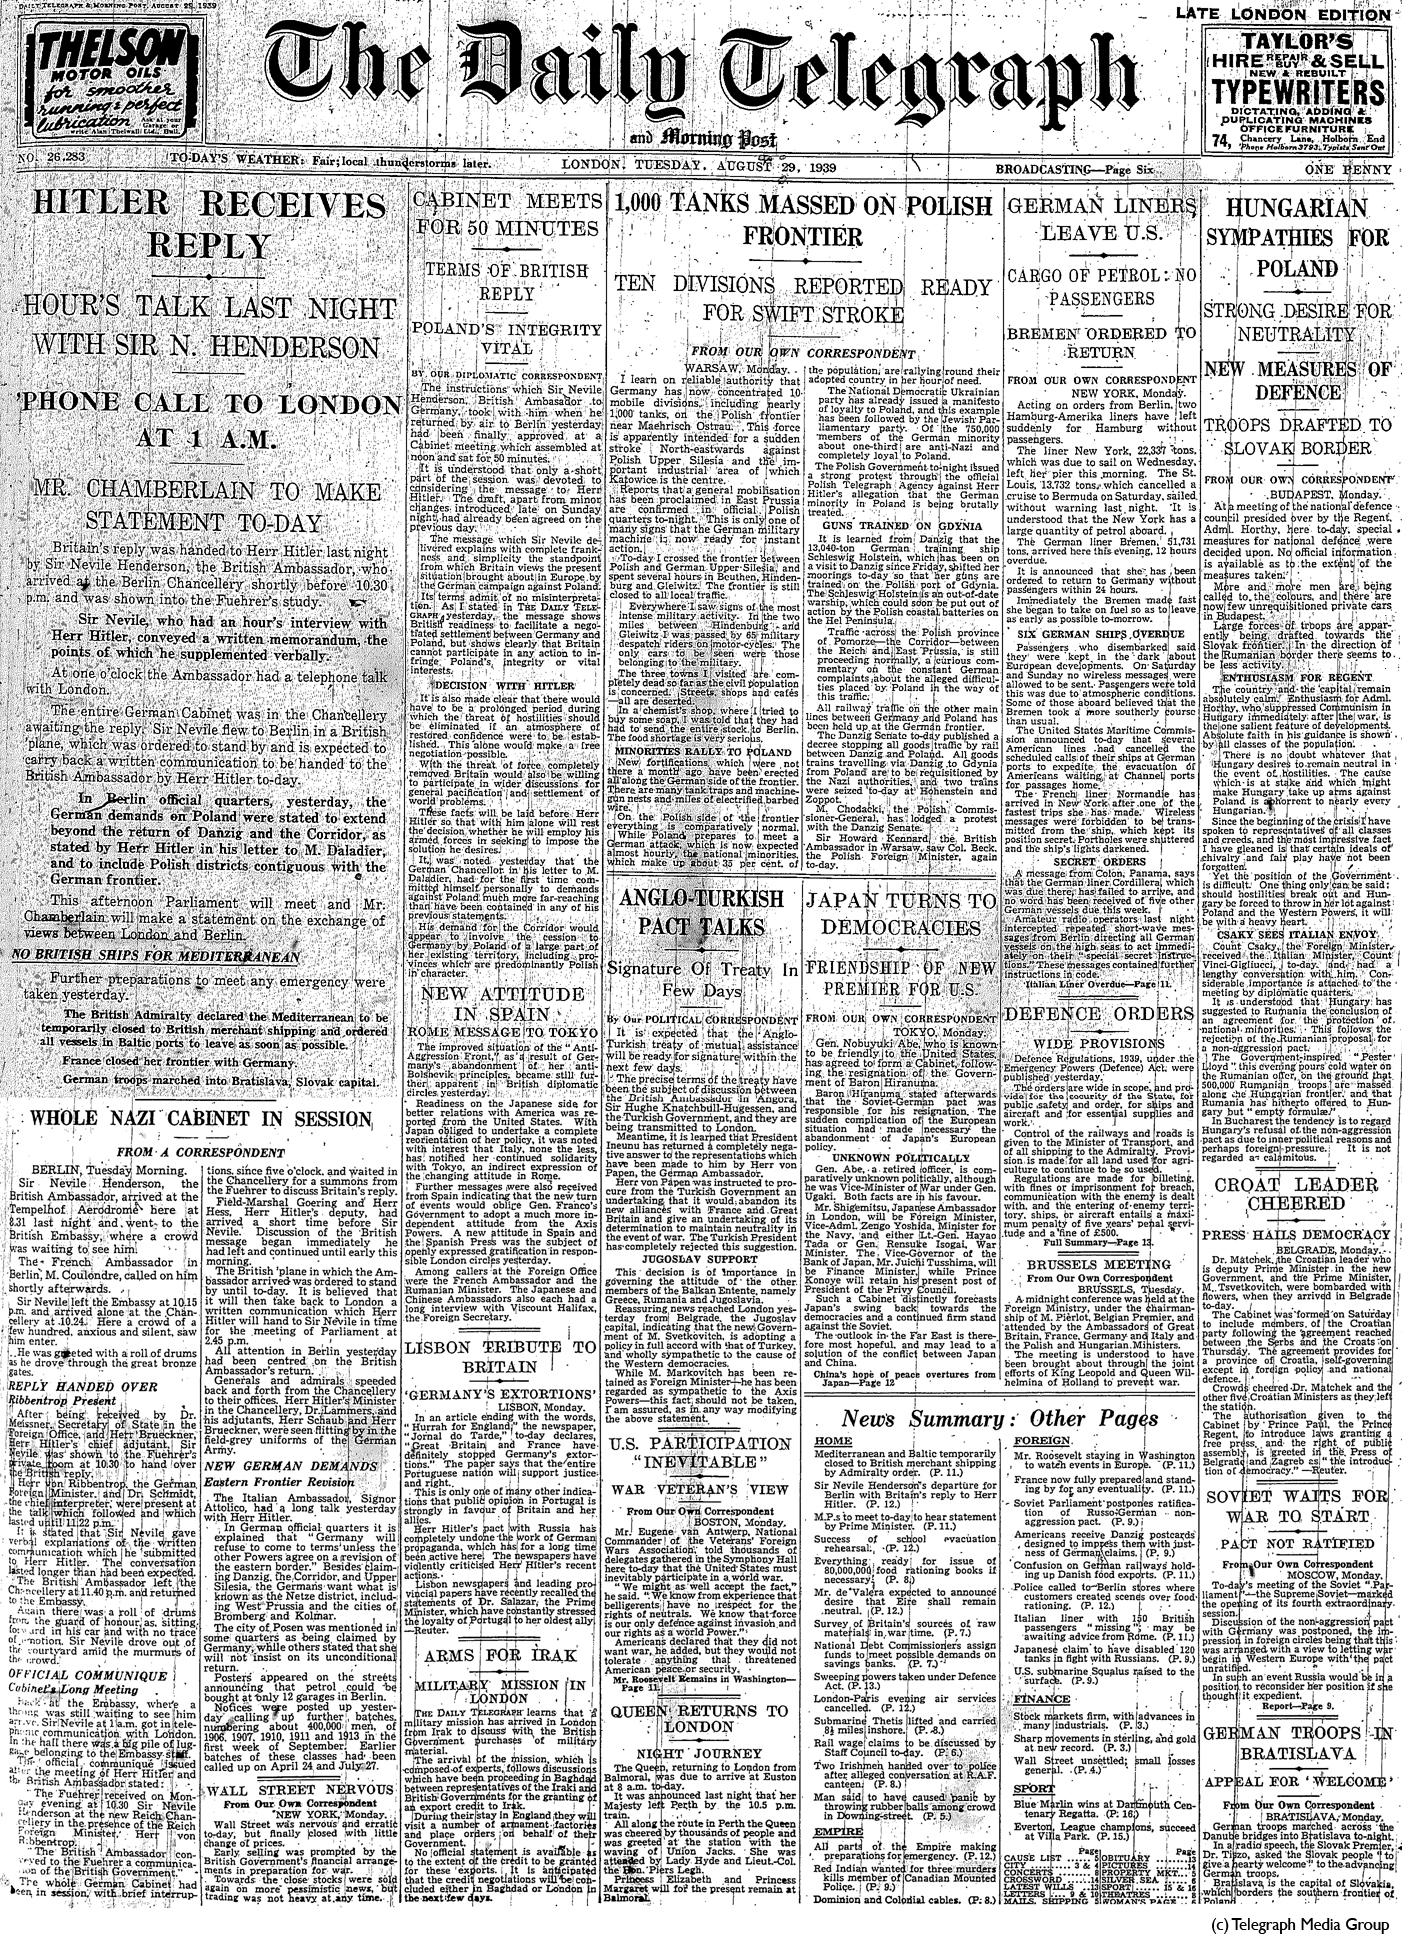 Daily Telegraph 29-8-39 Page 1